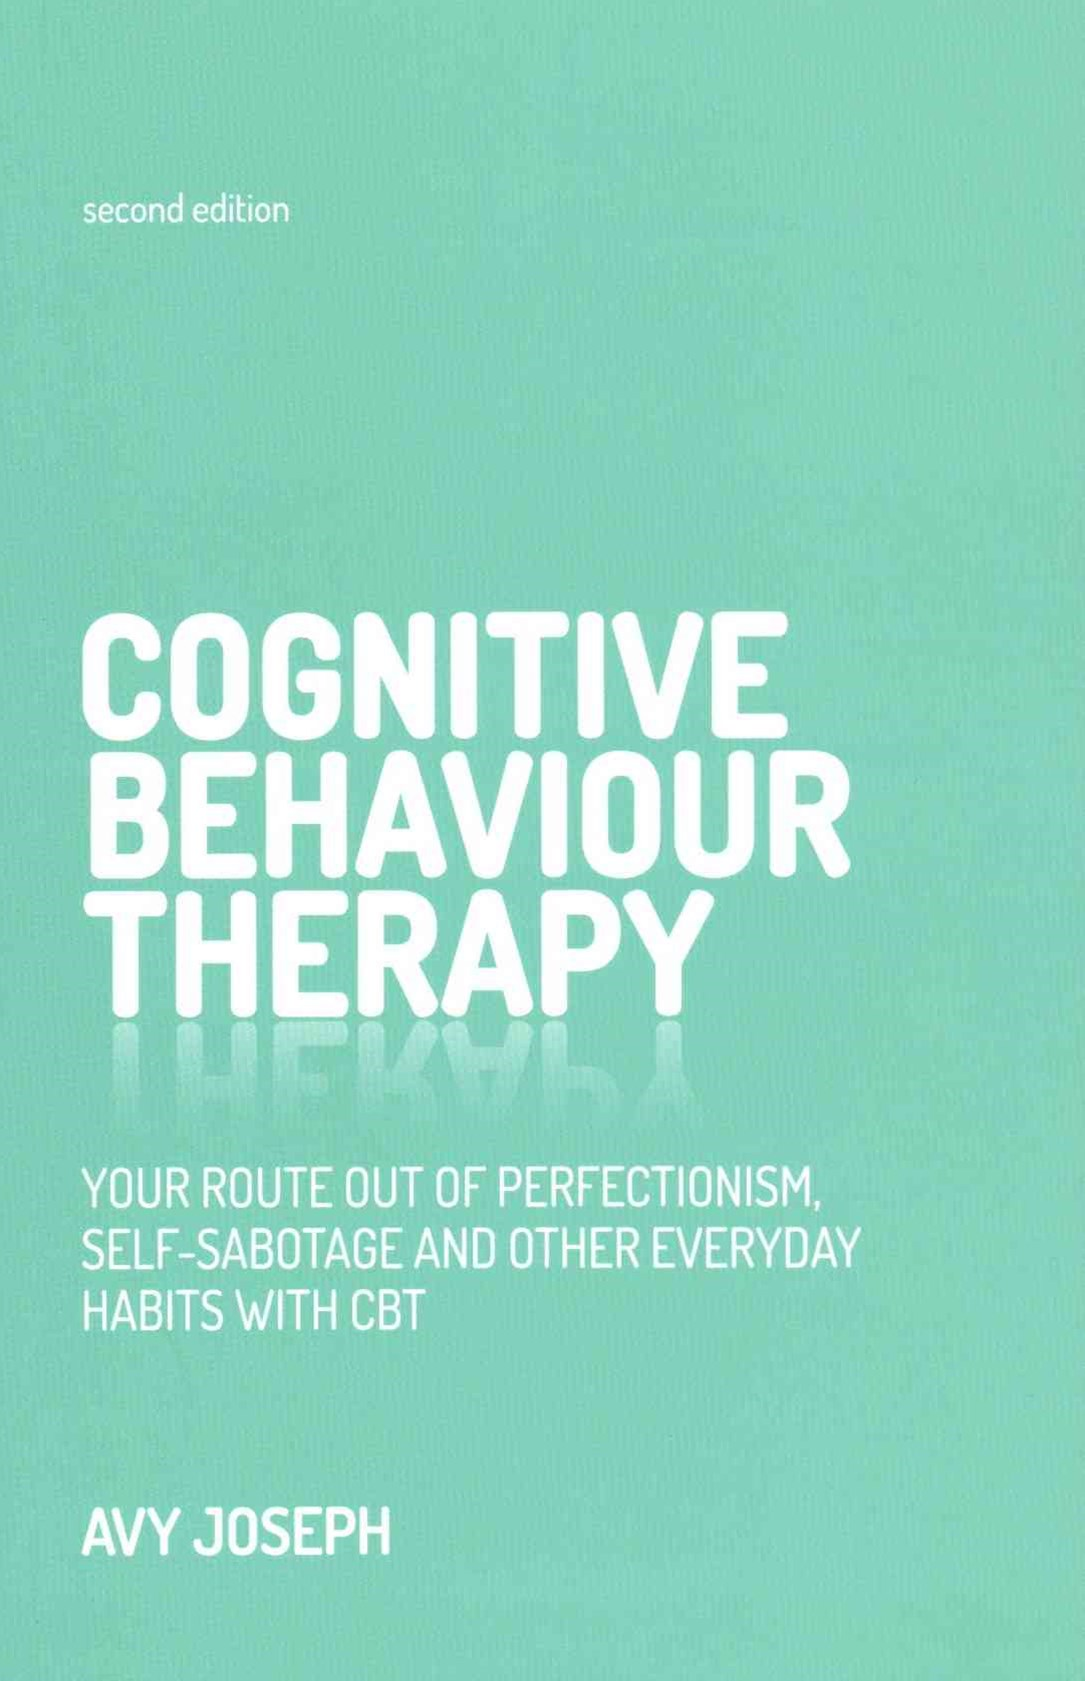 Cognitive Behaviour Therapy - Your Route Out of   Perfectionism, Self-sabotage and Other Everyday